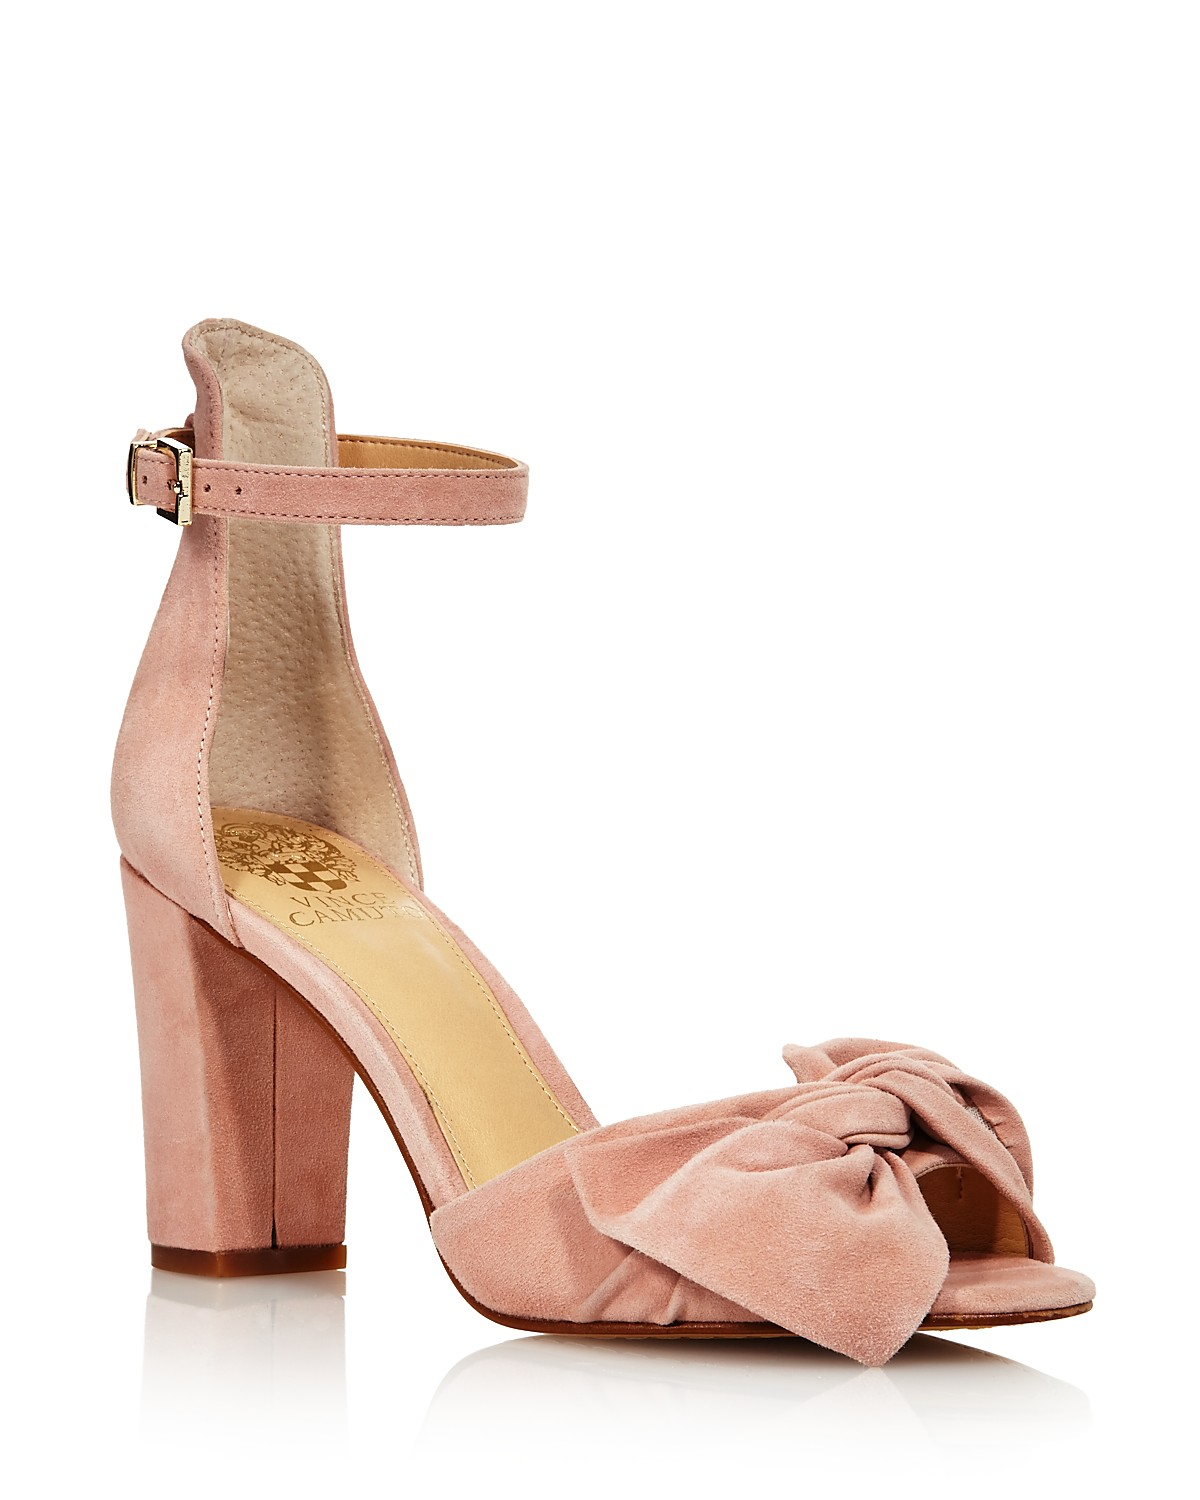 Vince Camuto Women's Carrelen Suede Bow Block Heel Sandals - 100% Exclusive NixsmNvlR